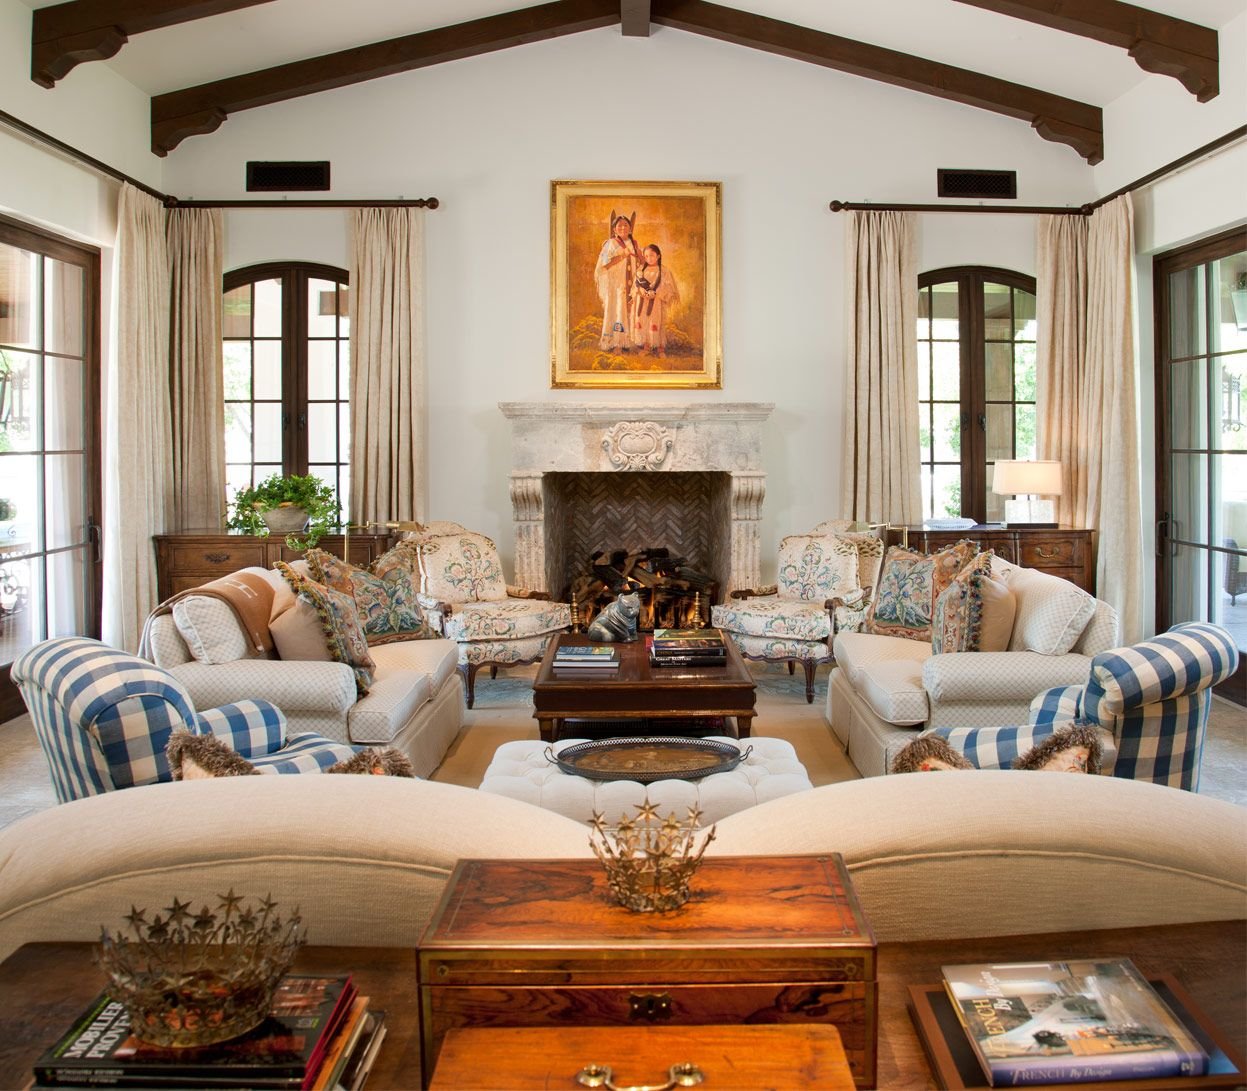 This Home Was Designed And Built With Influences Of